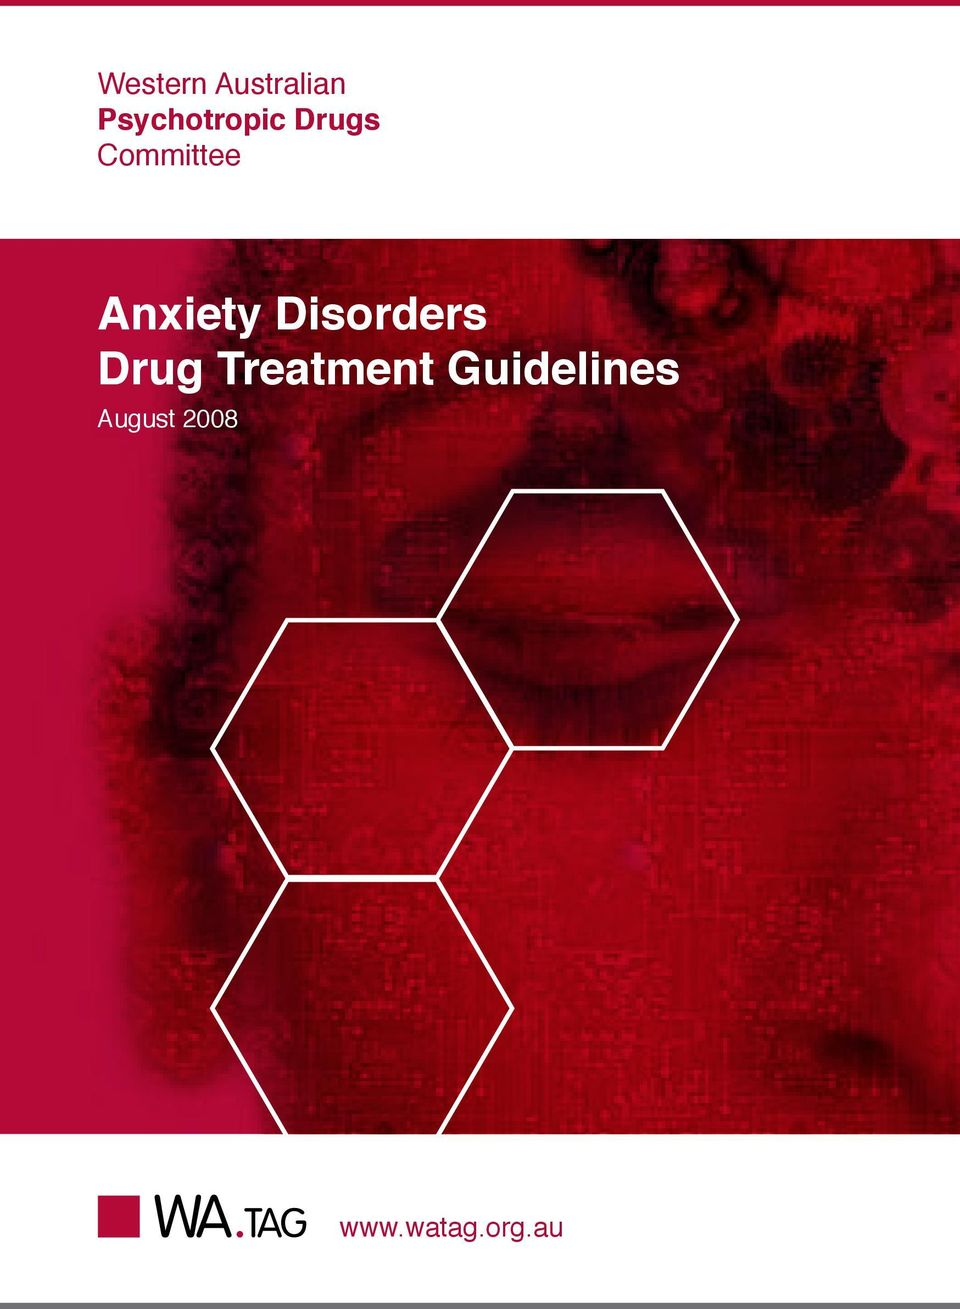 Anxiety Disorders Drug